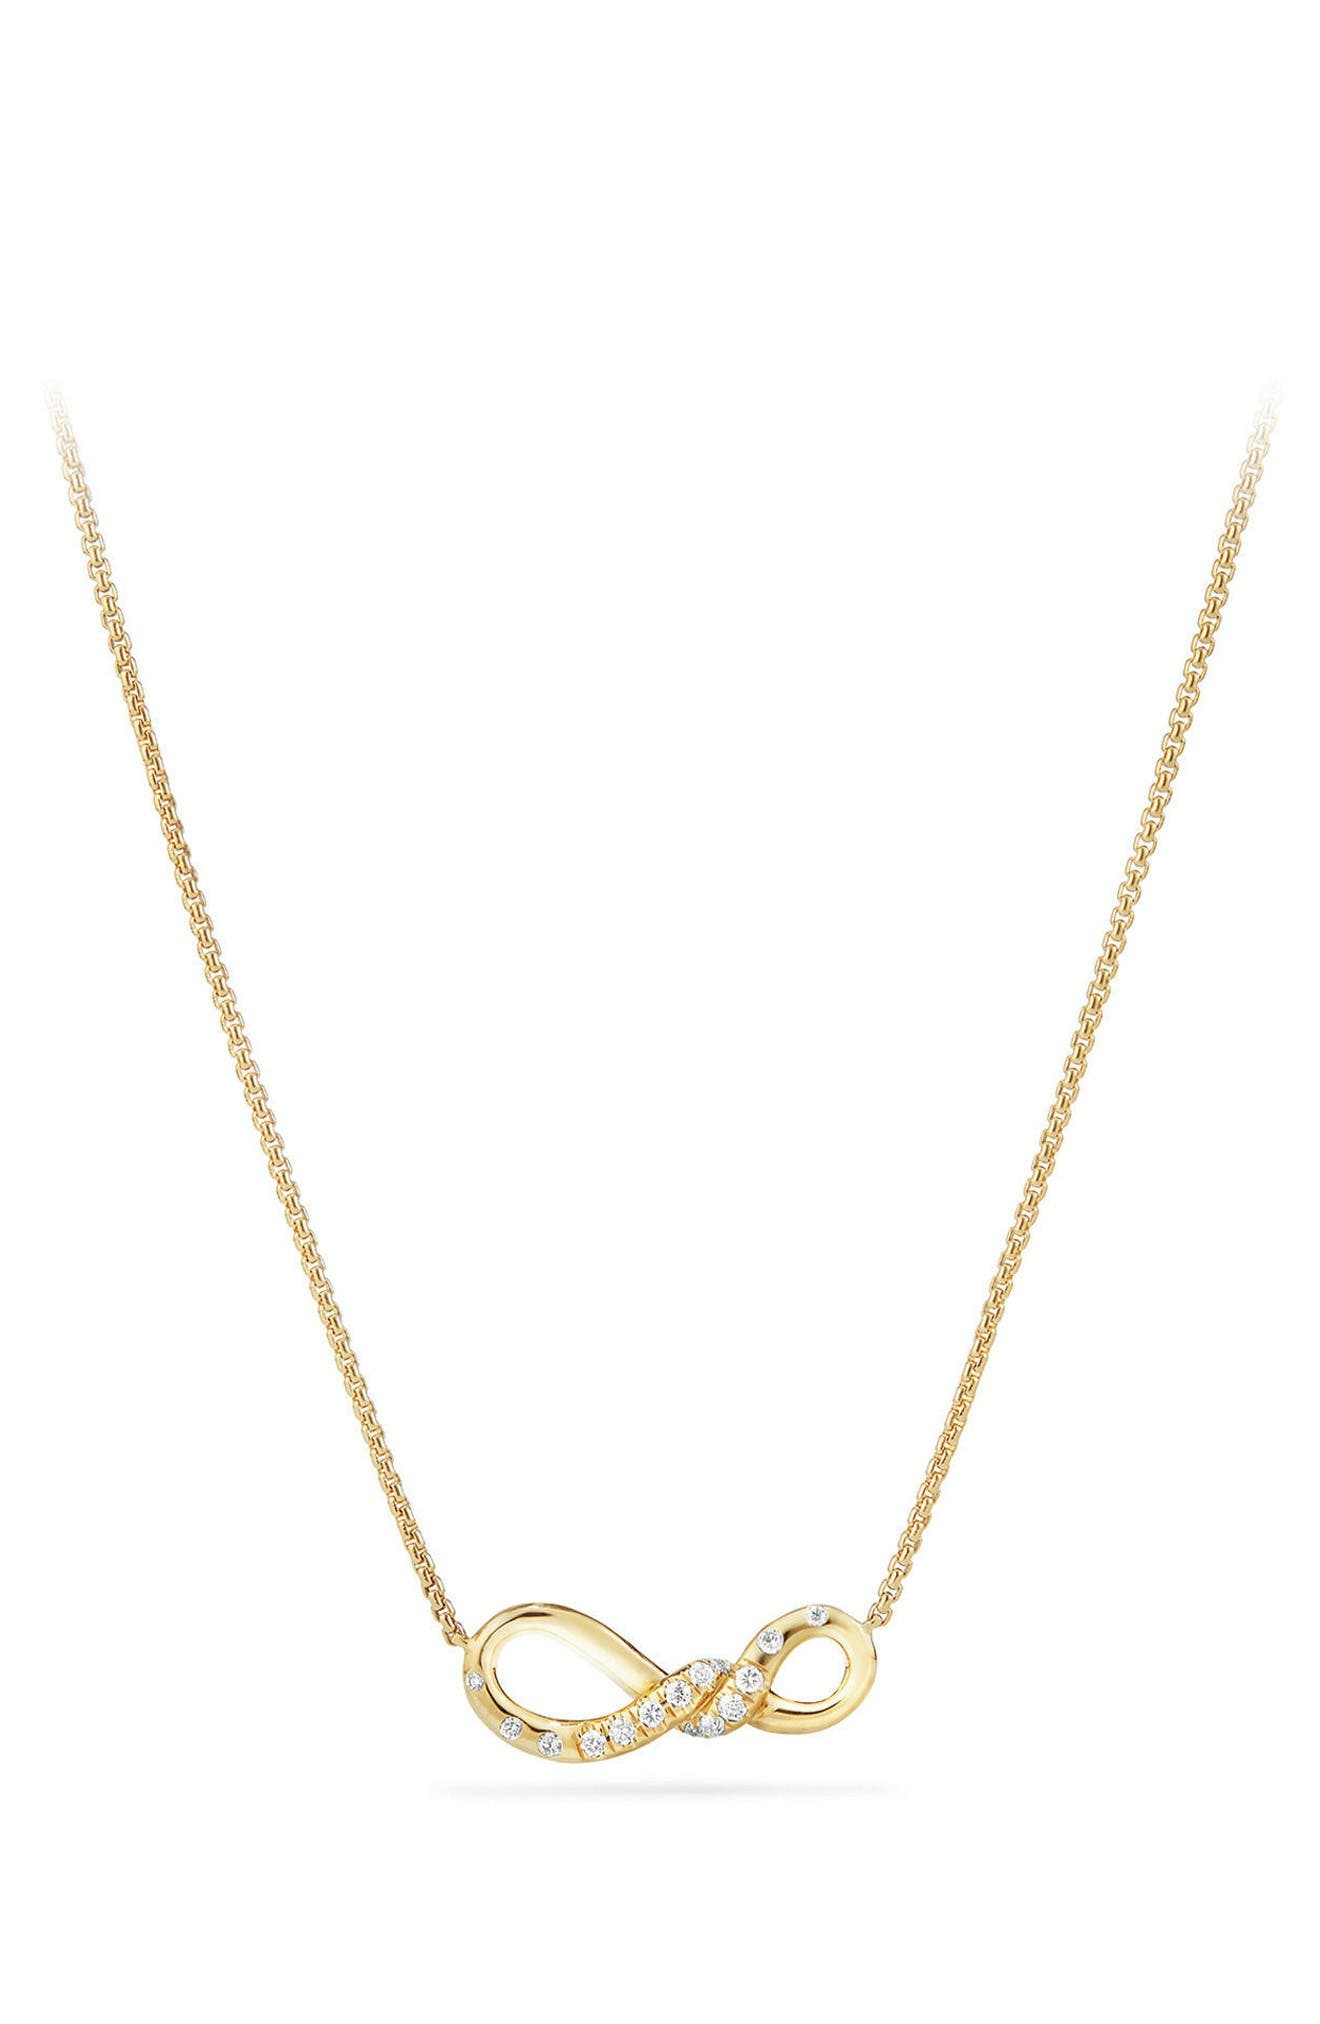 Alternate Image 1 Selected - David Yurman Continuance Pendant Necklace in 18K Gold with Diamonds